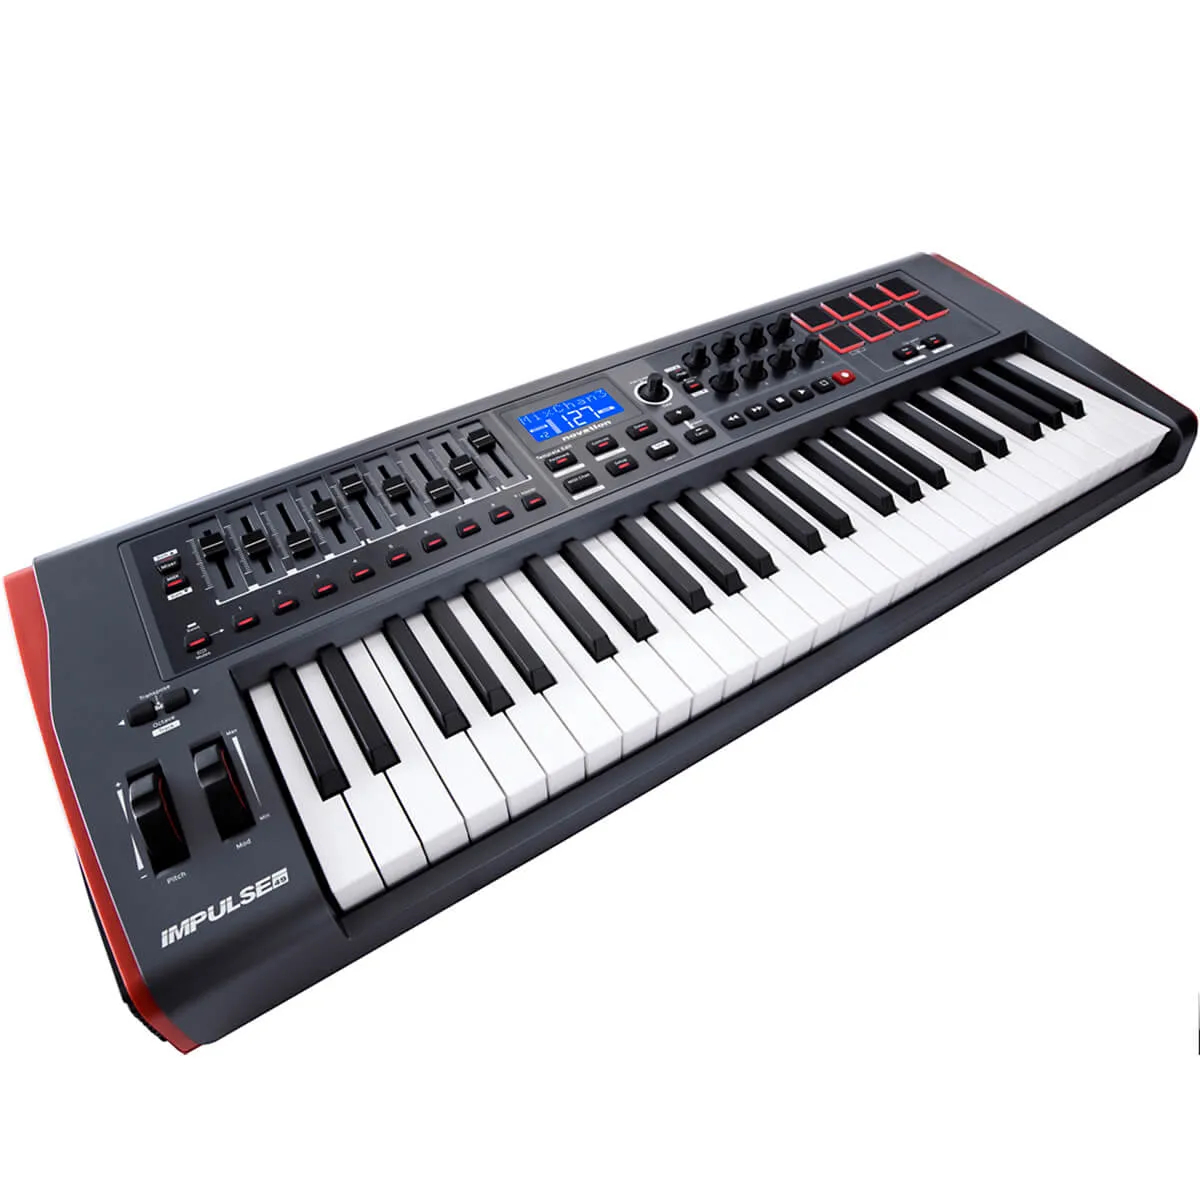 Teclado Controlador Novation Impulse 49 USB/MIDI